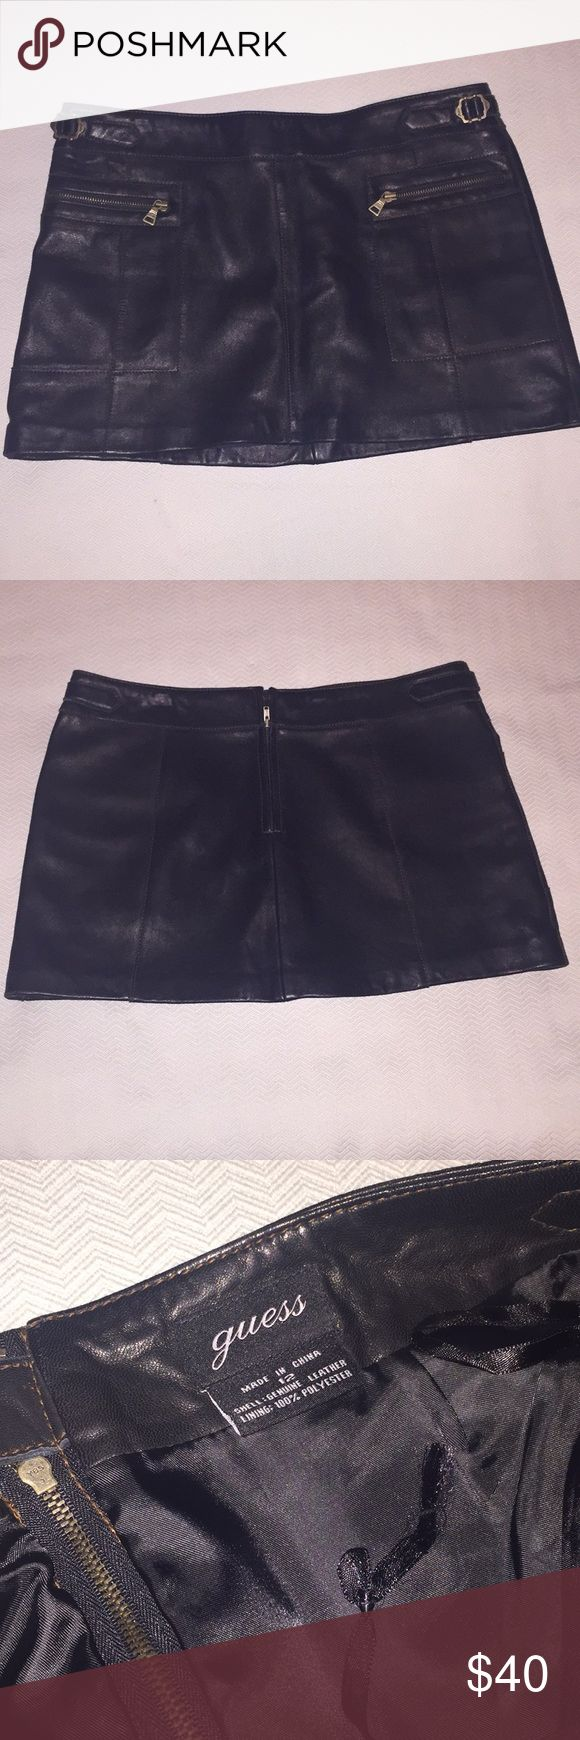 Guess Leather Mini Skirt Leather mini skirt with zipper pockets, very nice piece in good condition. Guess Skirts Mini